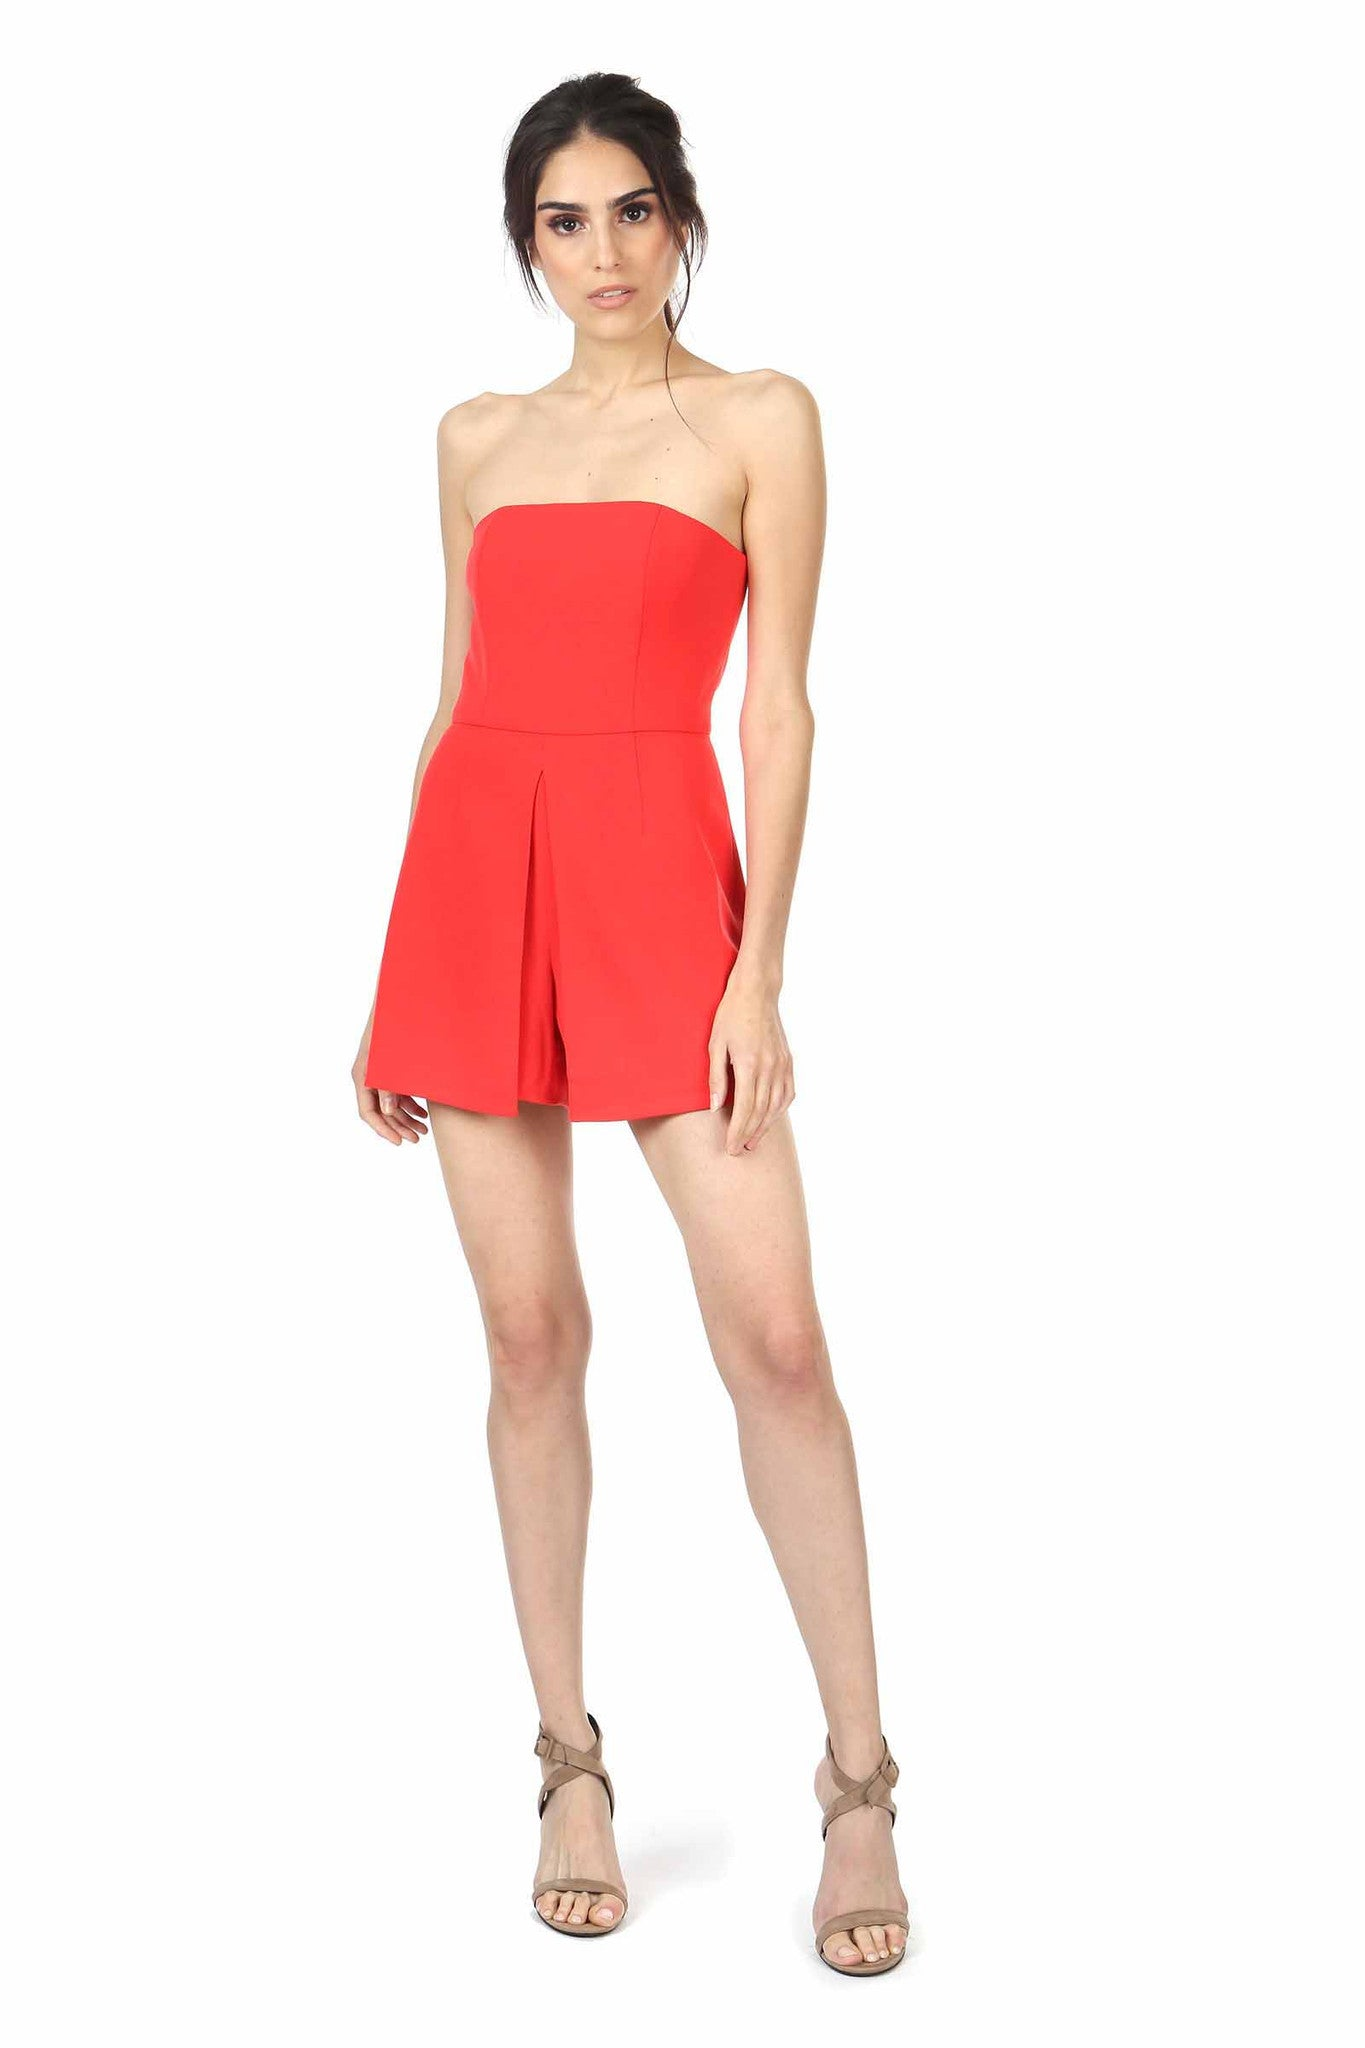 BAILOR CORAL RED STRAPLESS ROMPER